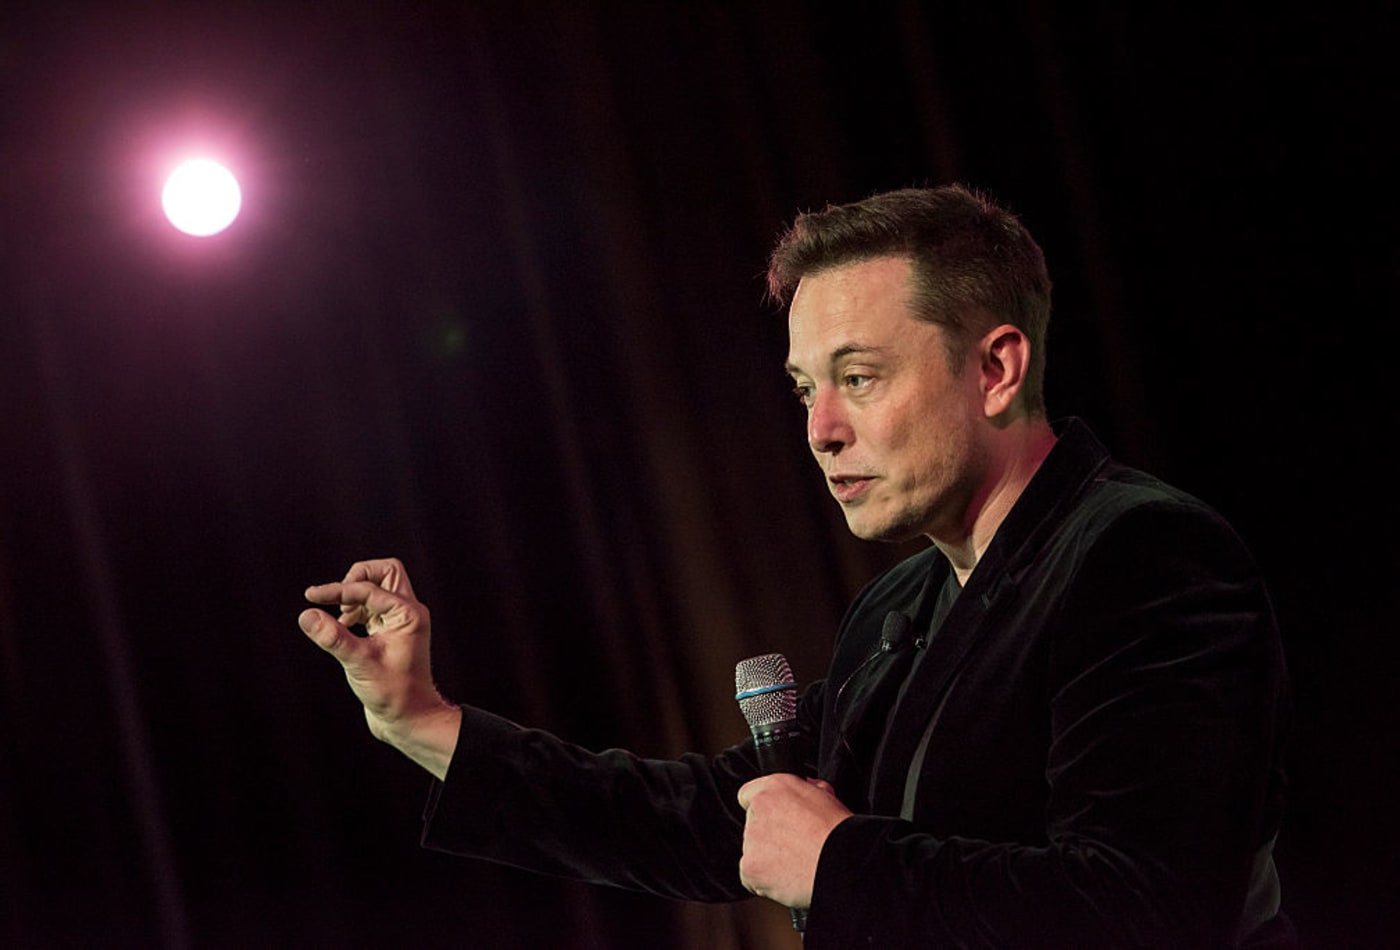 Elon Musk has detailed how humans will survive on Mars within our lifetime